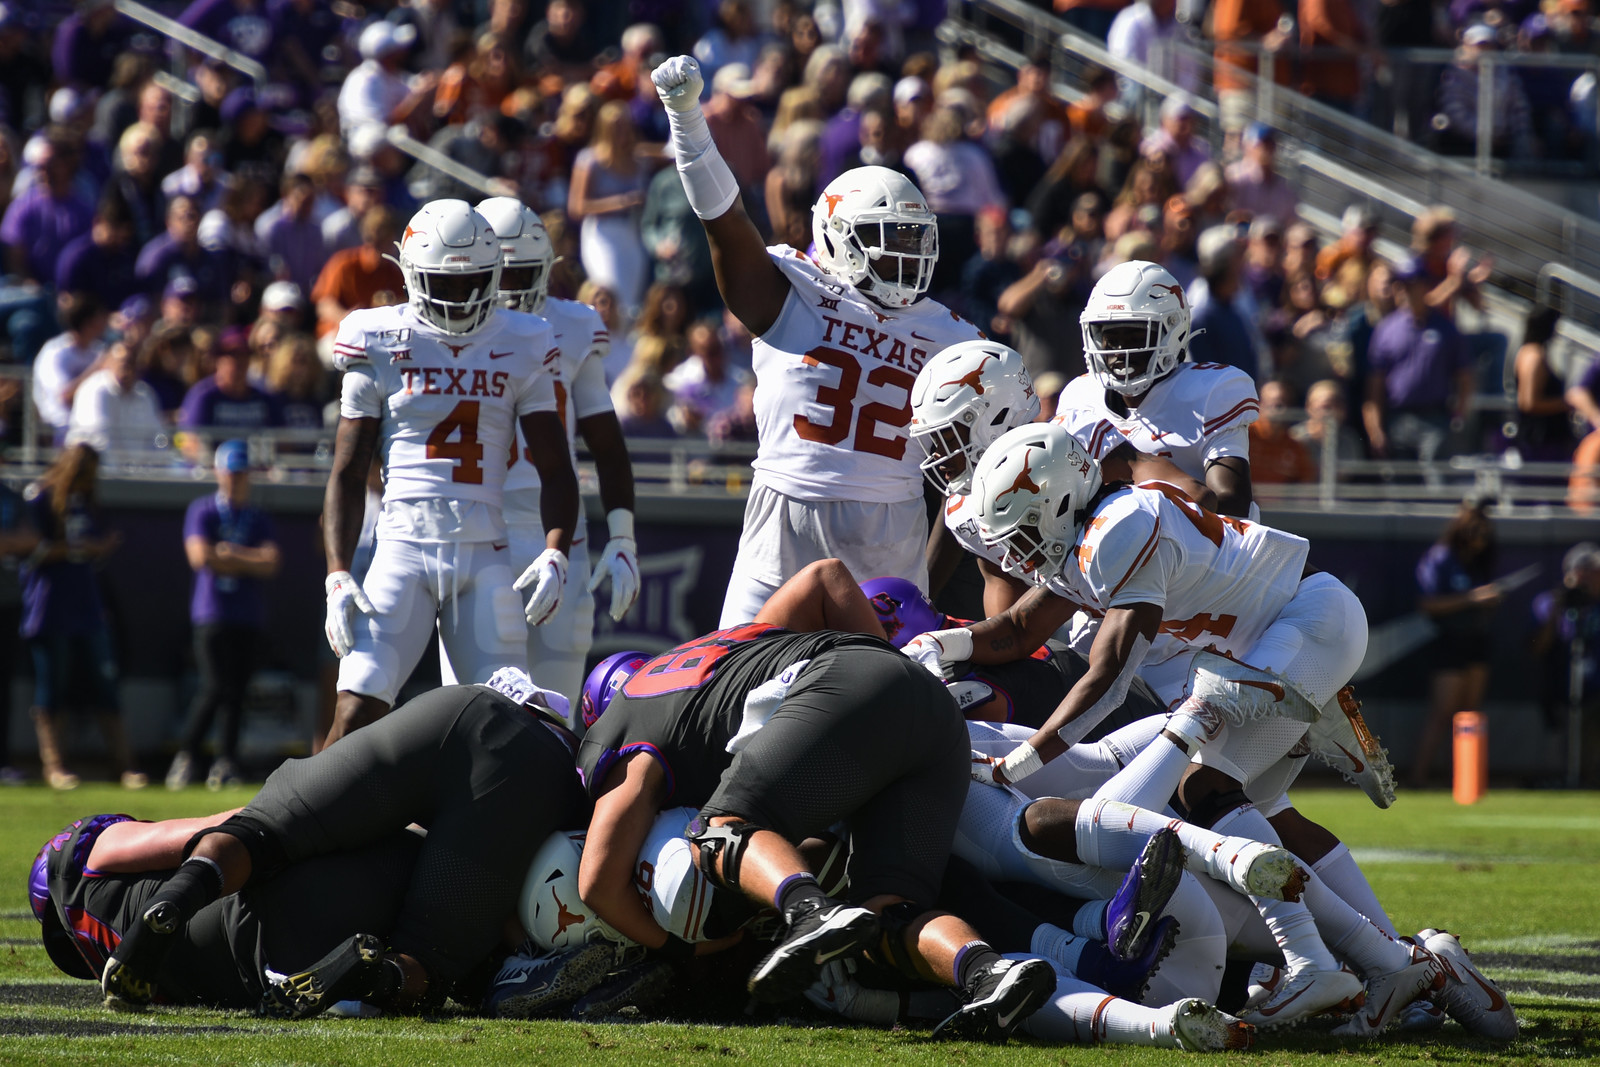 Texas Football v Texas Christian University | 10.26.19